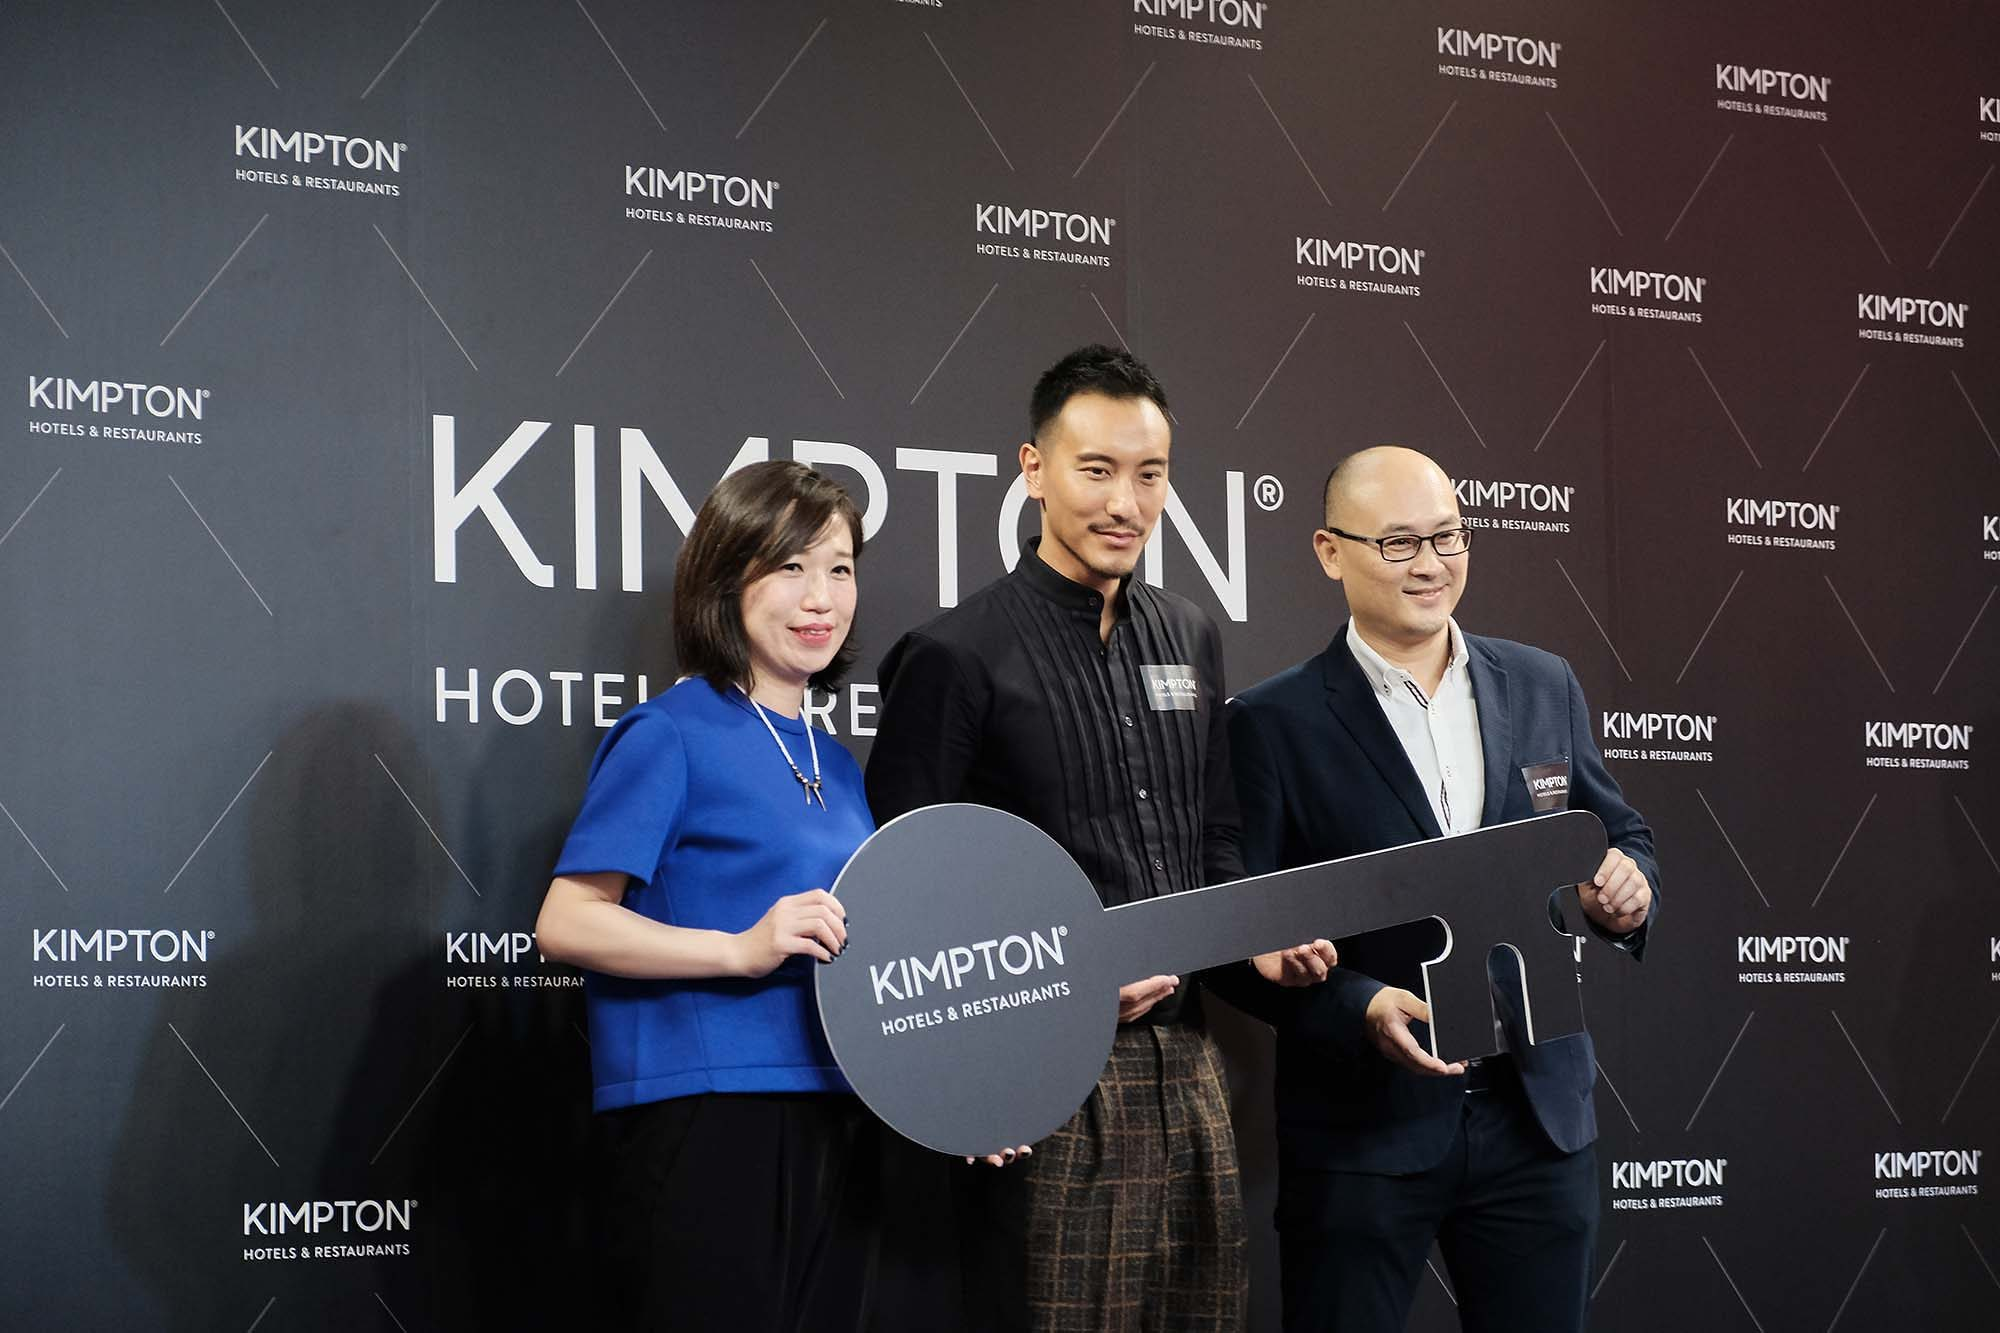 kimpton-hotels-and-restaurants-pop-up-in-taiepi-01